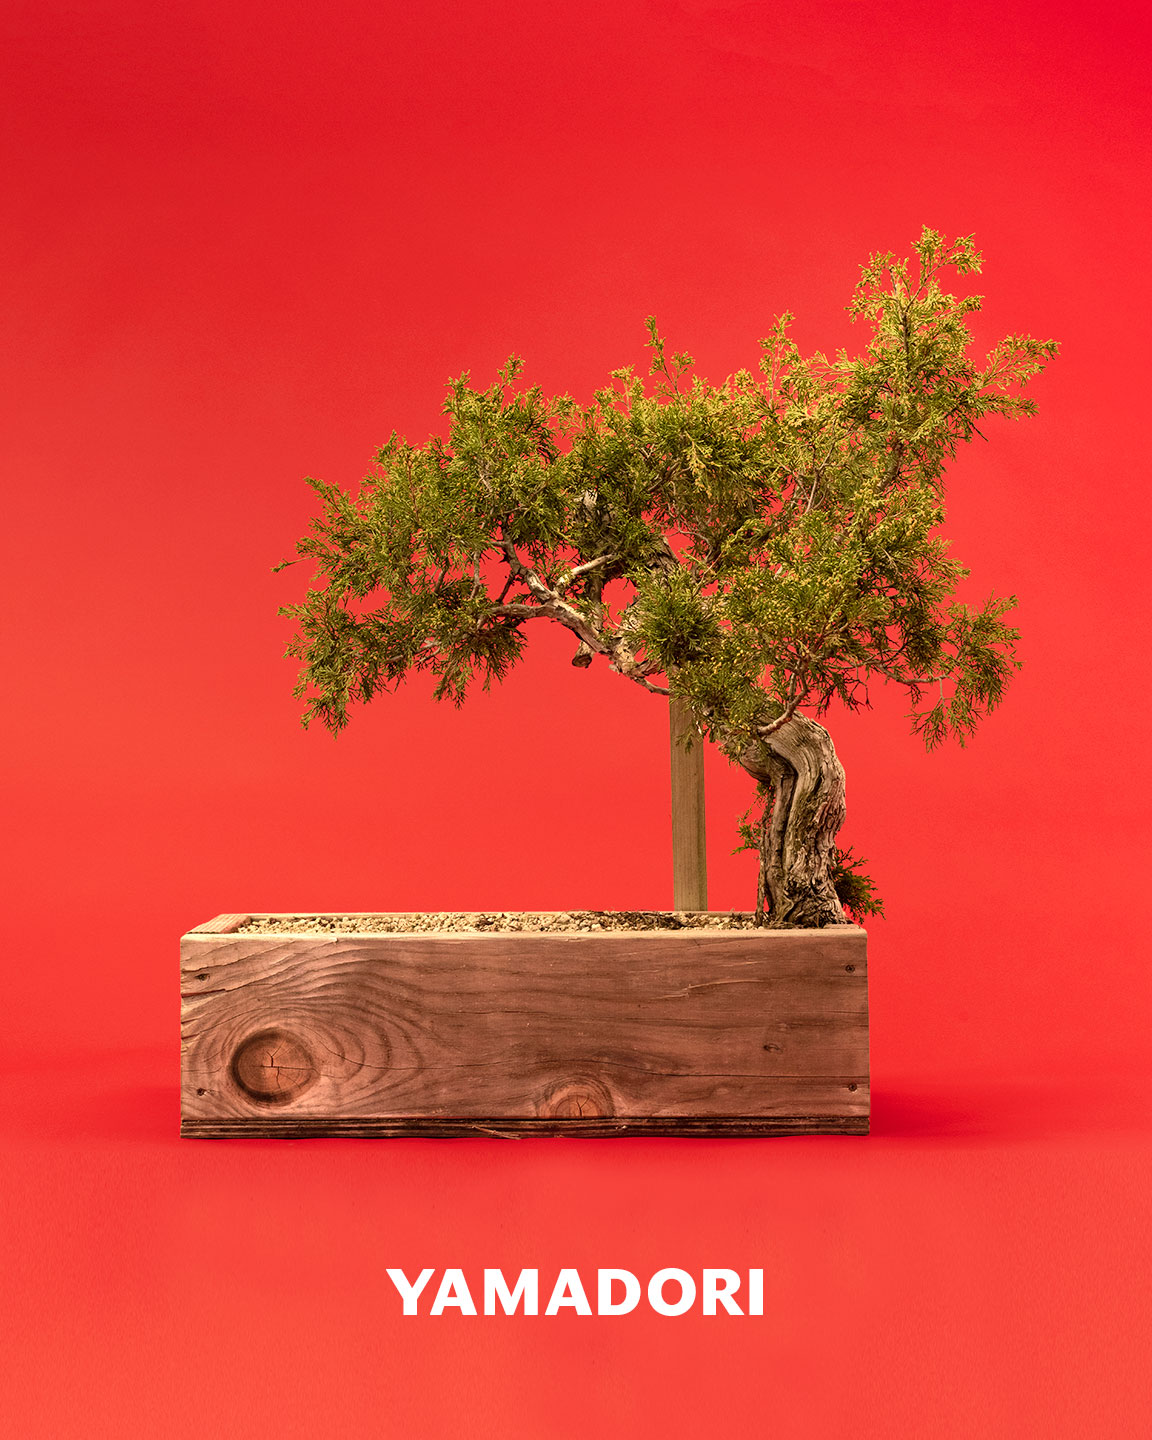 yamadori_juniper_bonsai